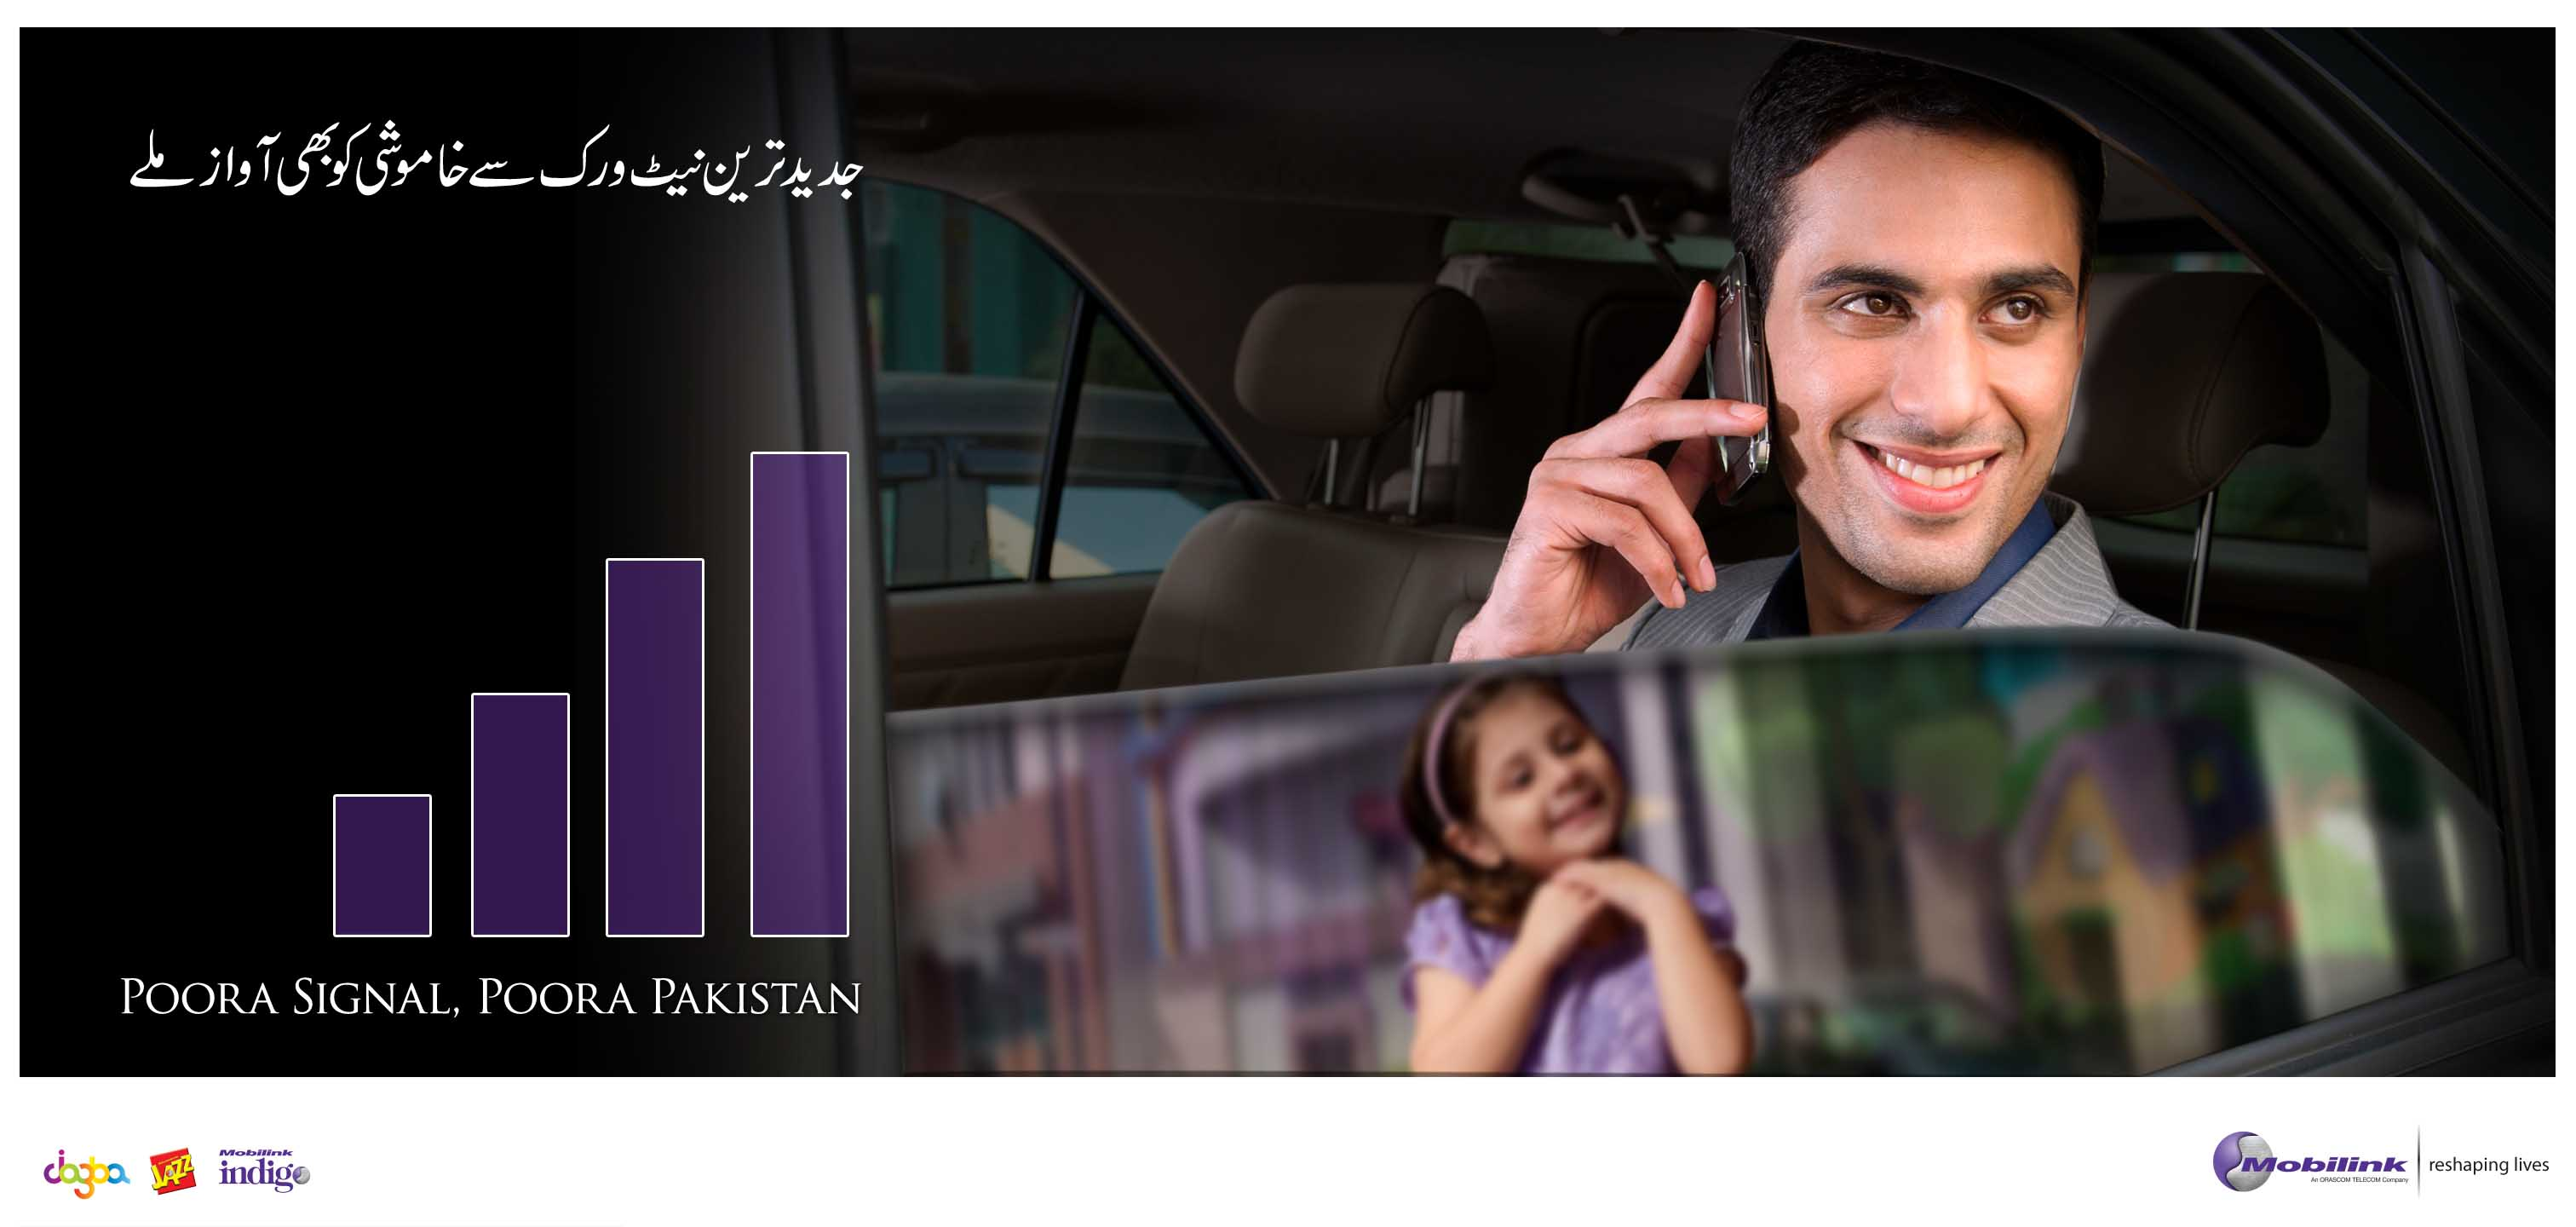 Jazz Jazba Mobilink I Love You Ad